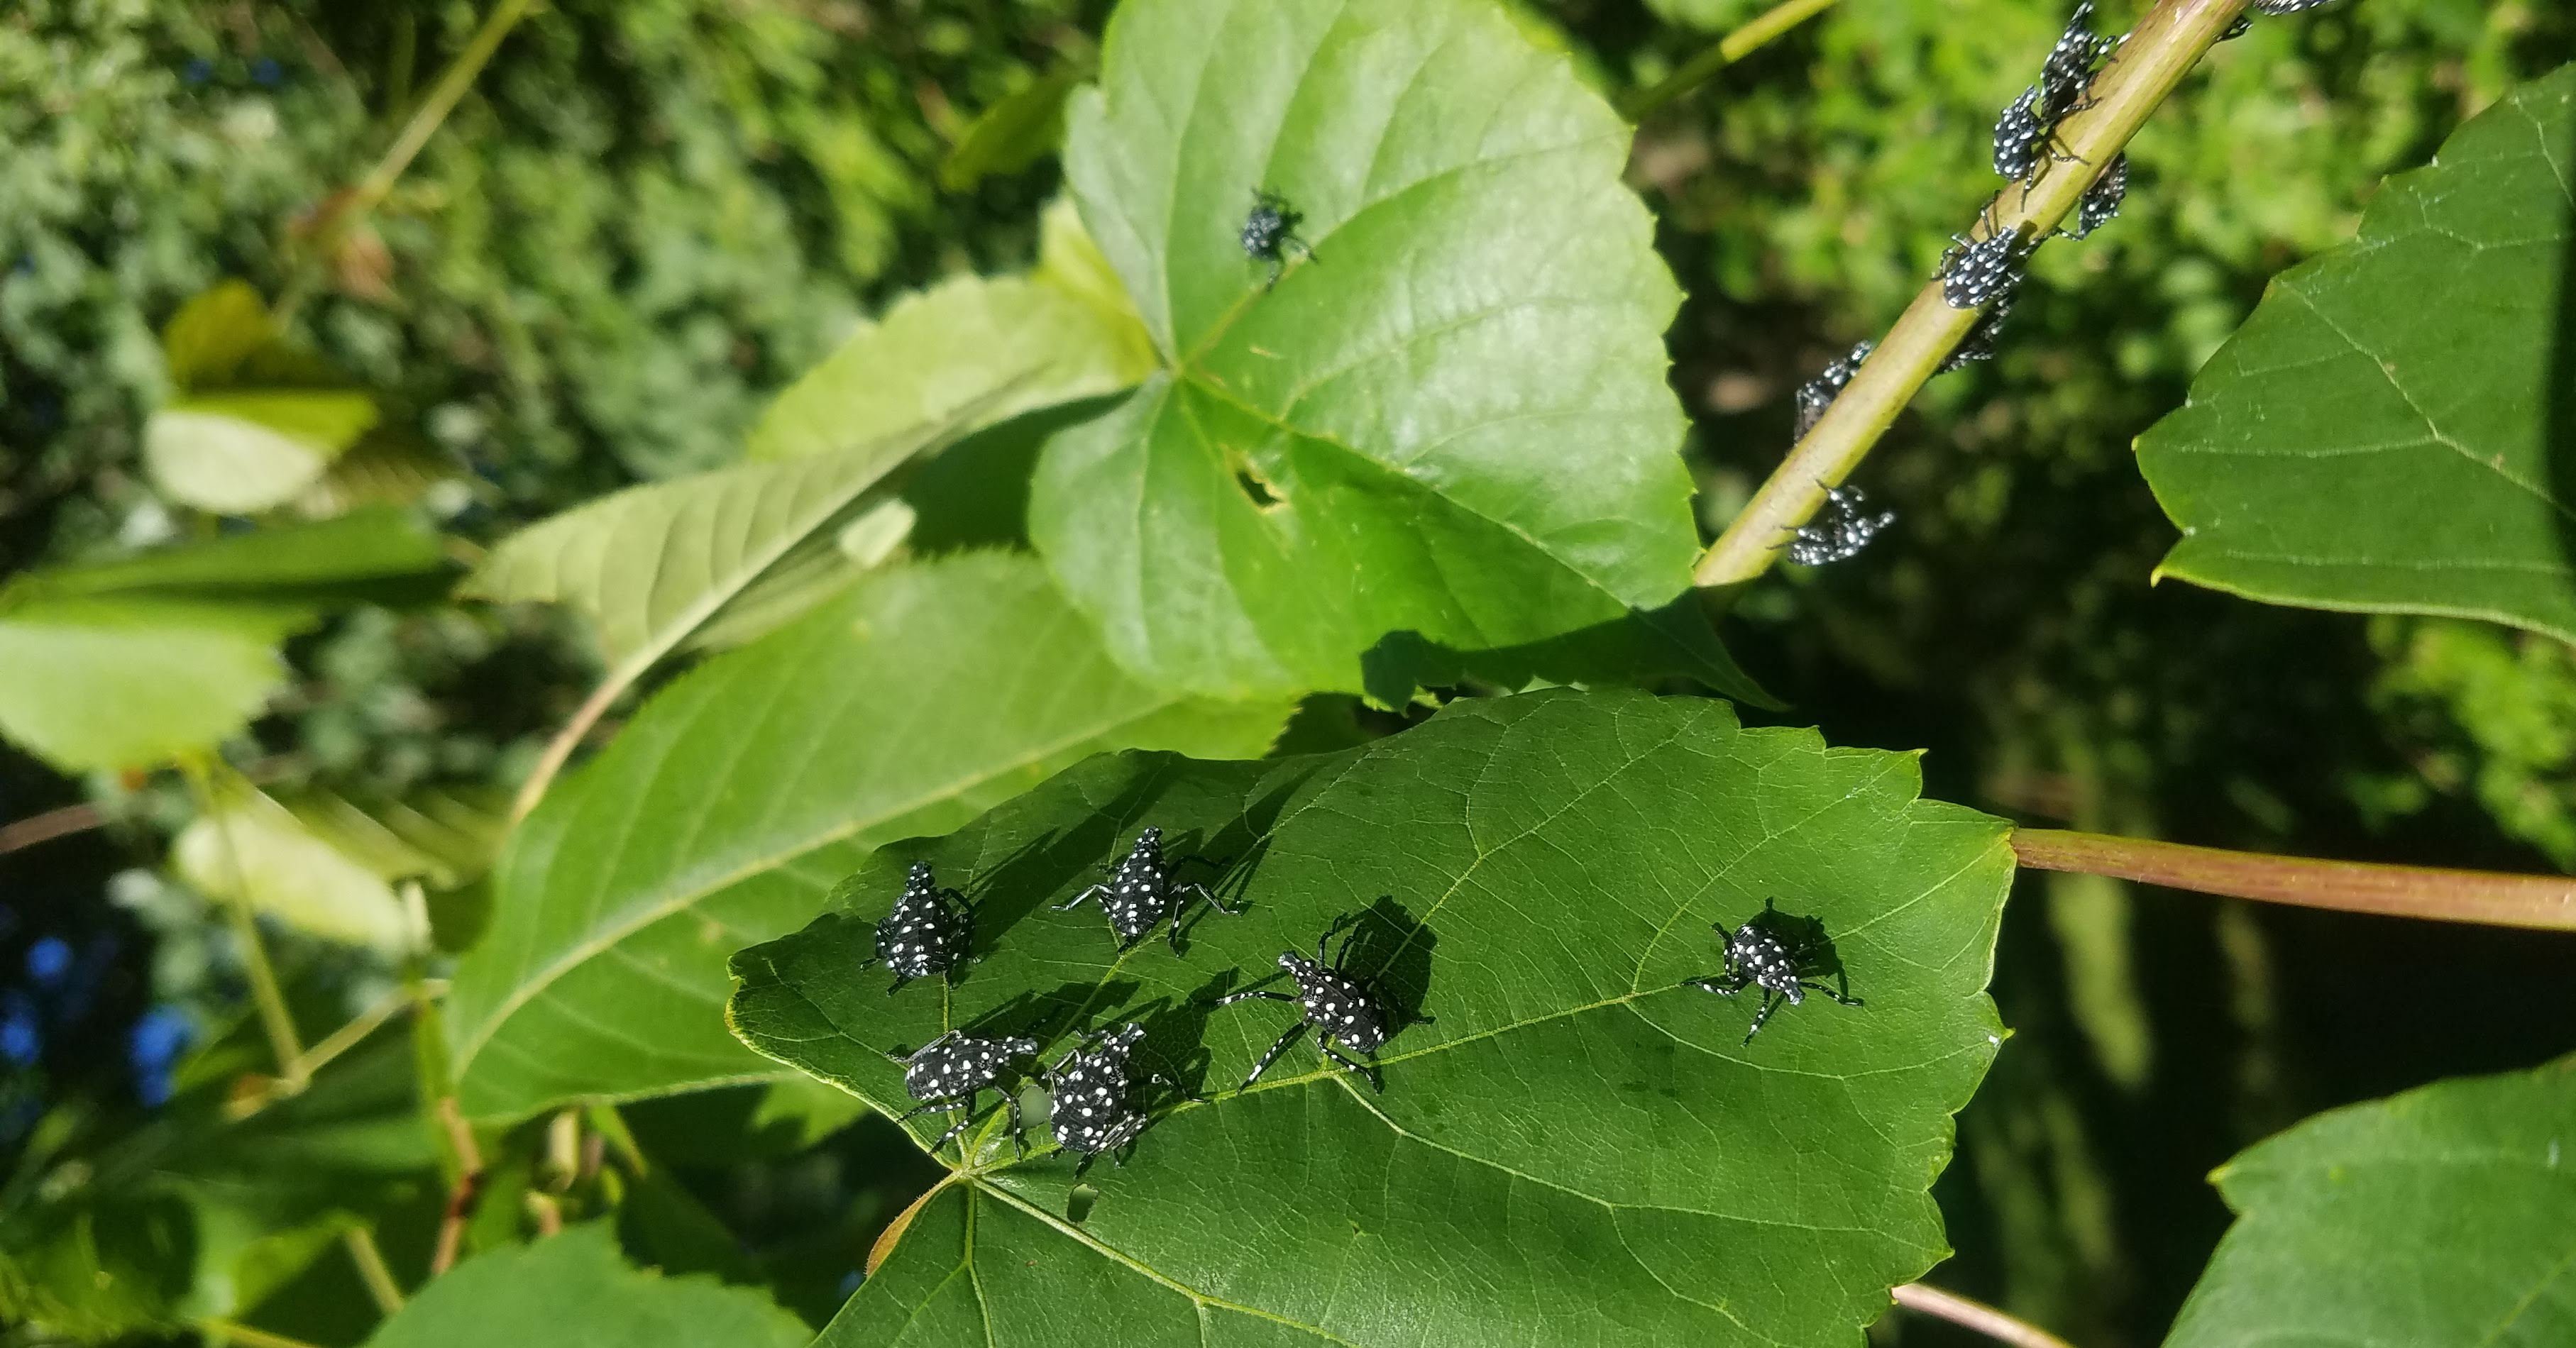 spotted lanternfly young